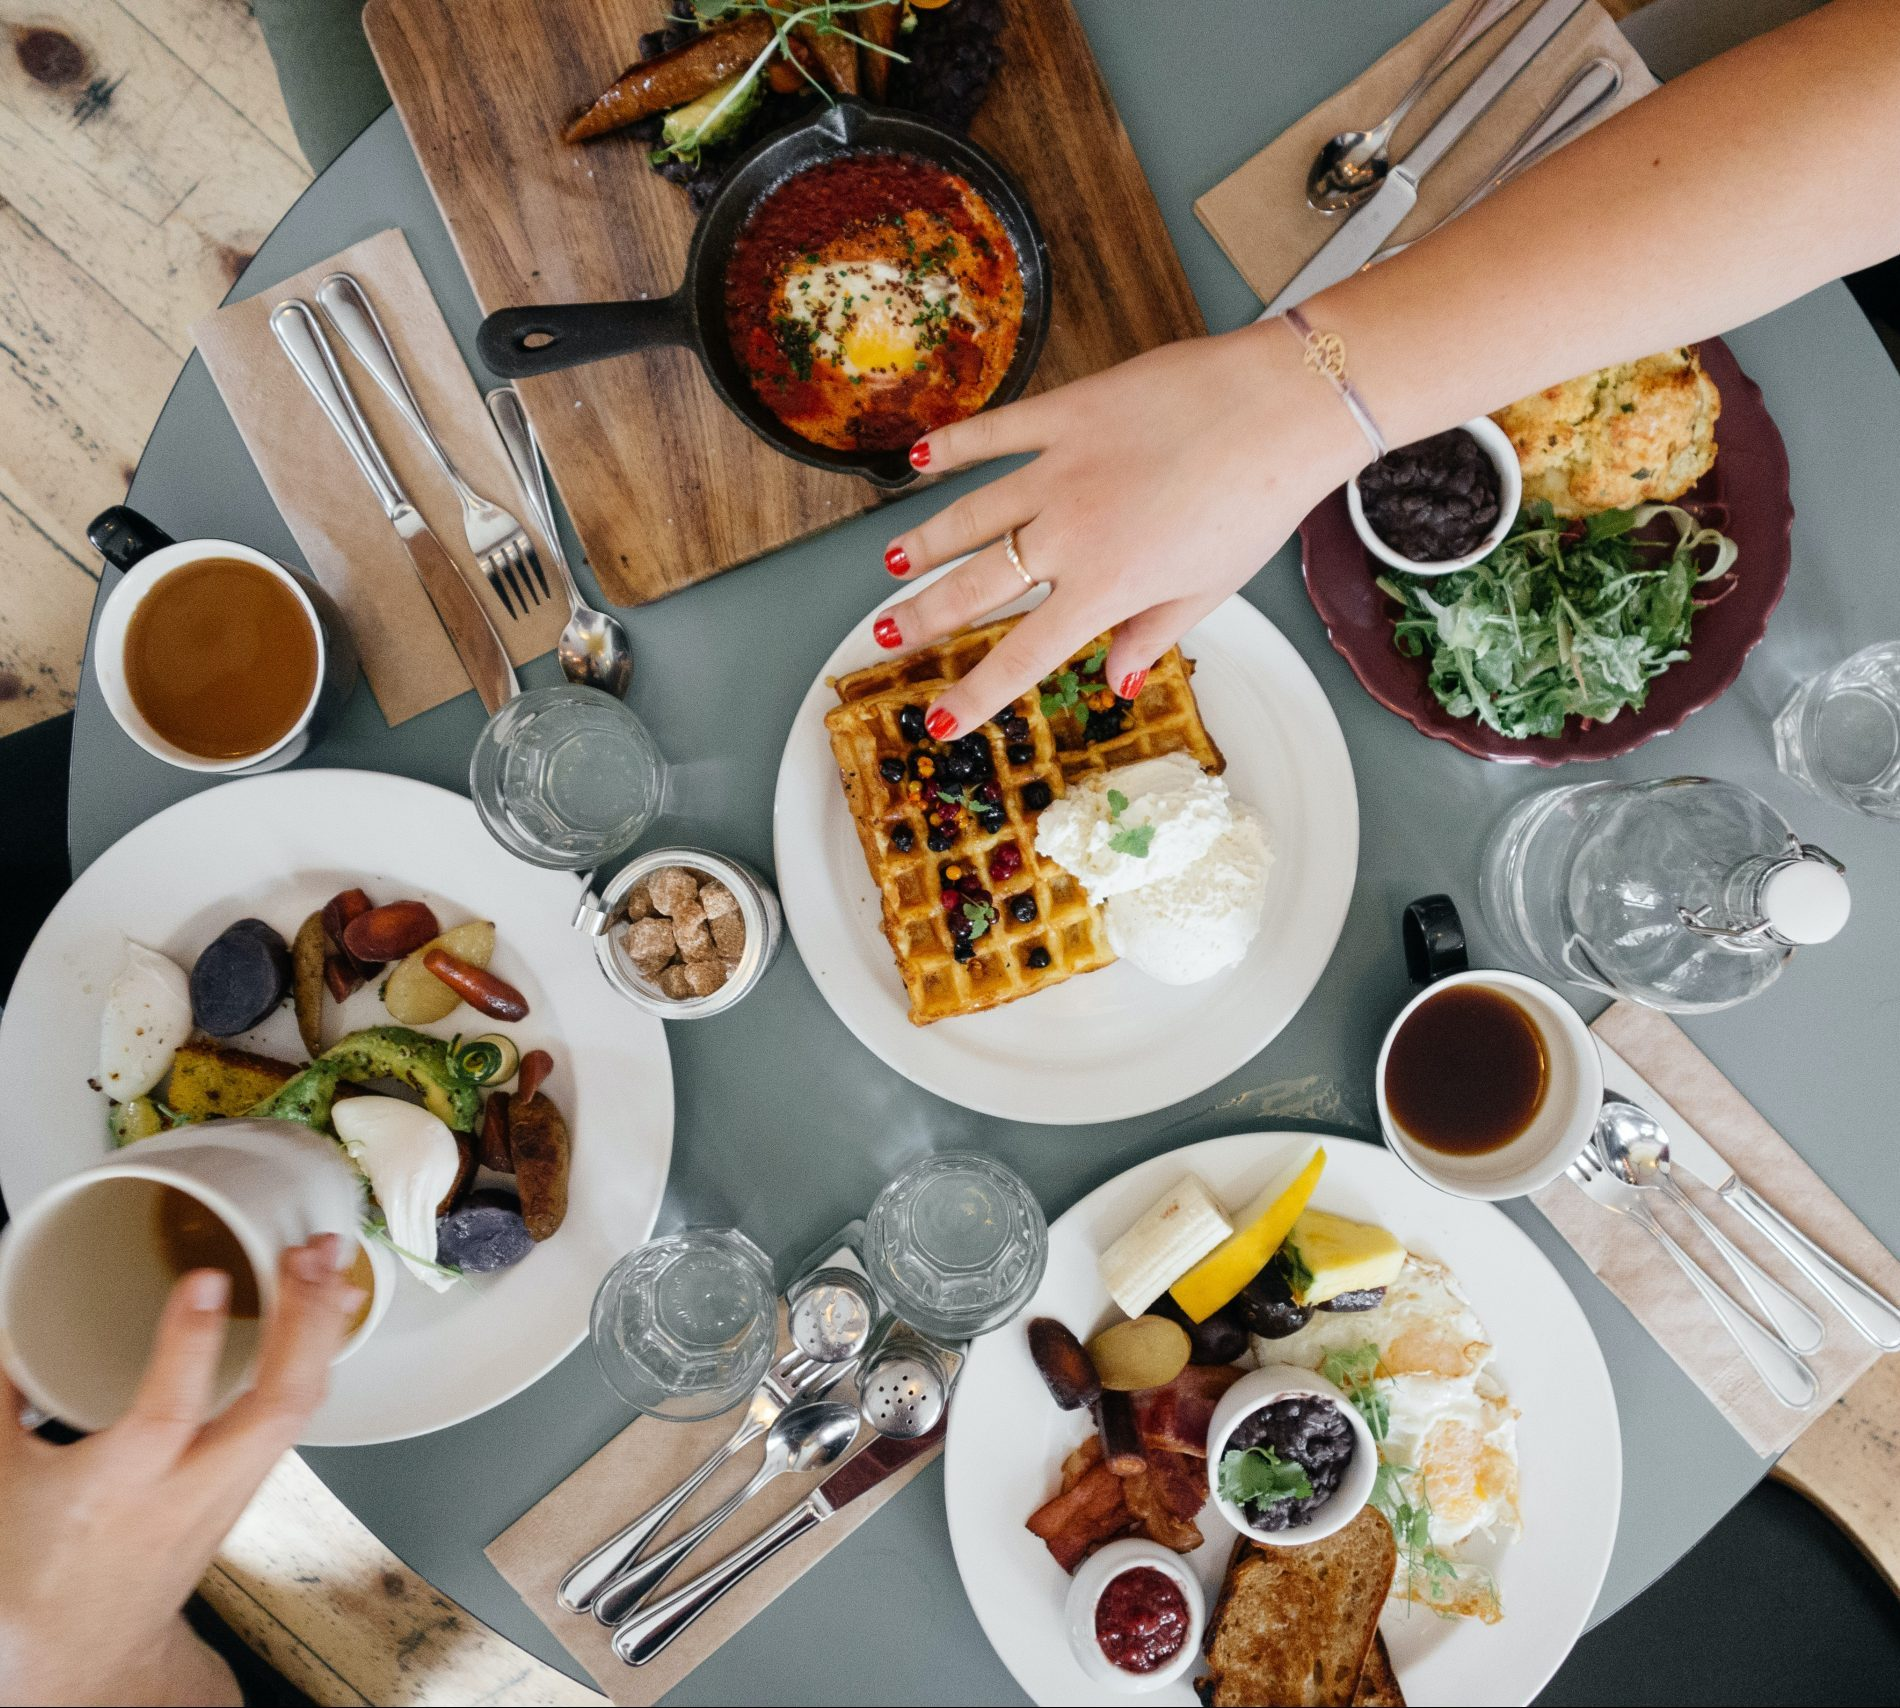 Photo from above of plates of food and hands reaching